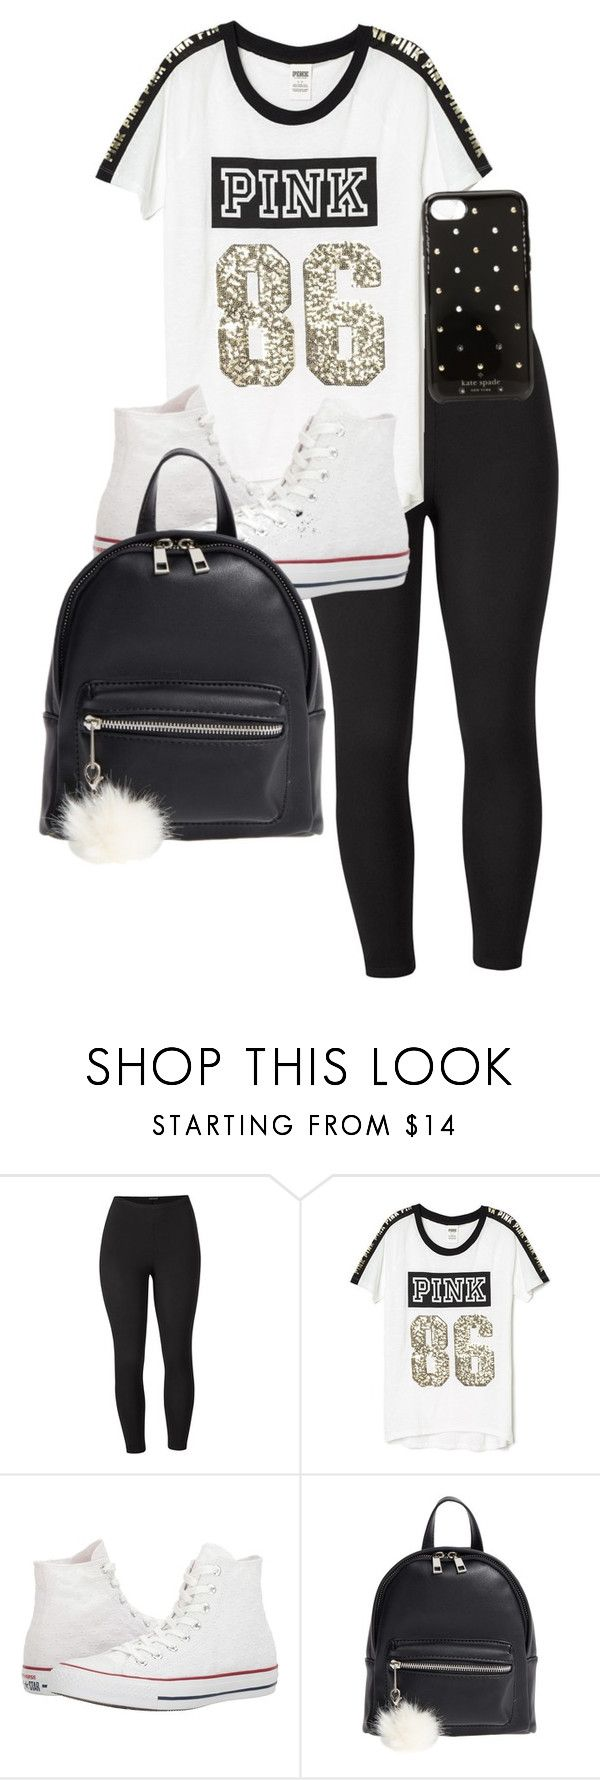 """""""Wednesday at School"""" by alandra333 on Polyvore featuring Venus, Victoria's Secret, Converse, BP., Kate Spade and plus size clothing"""